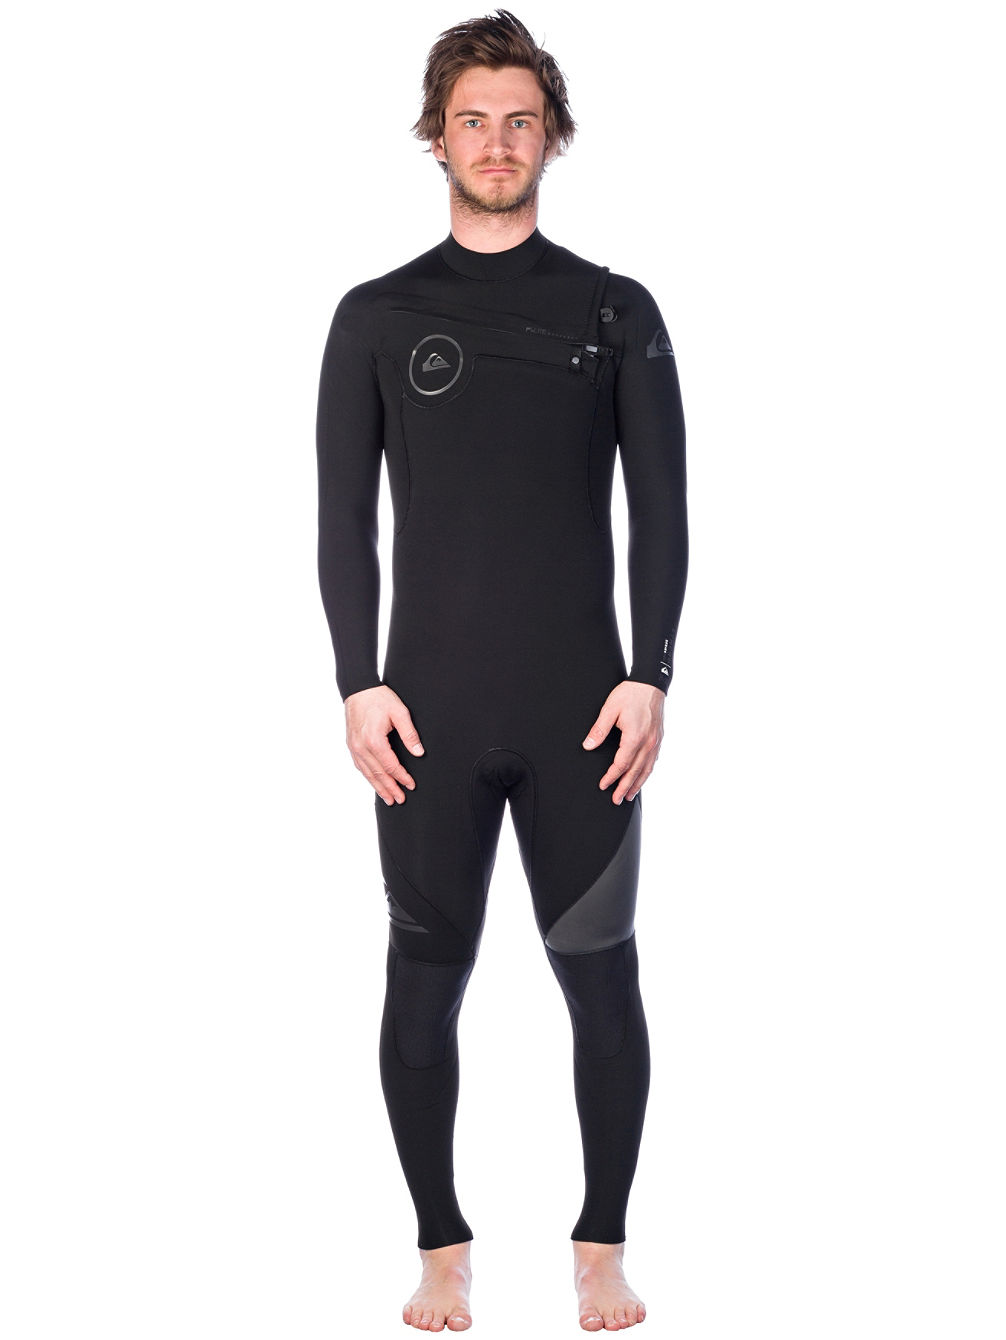 3/2 Syncro Series Chest Zip Gbs Wetsuit